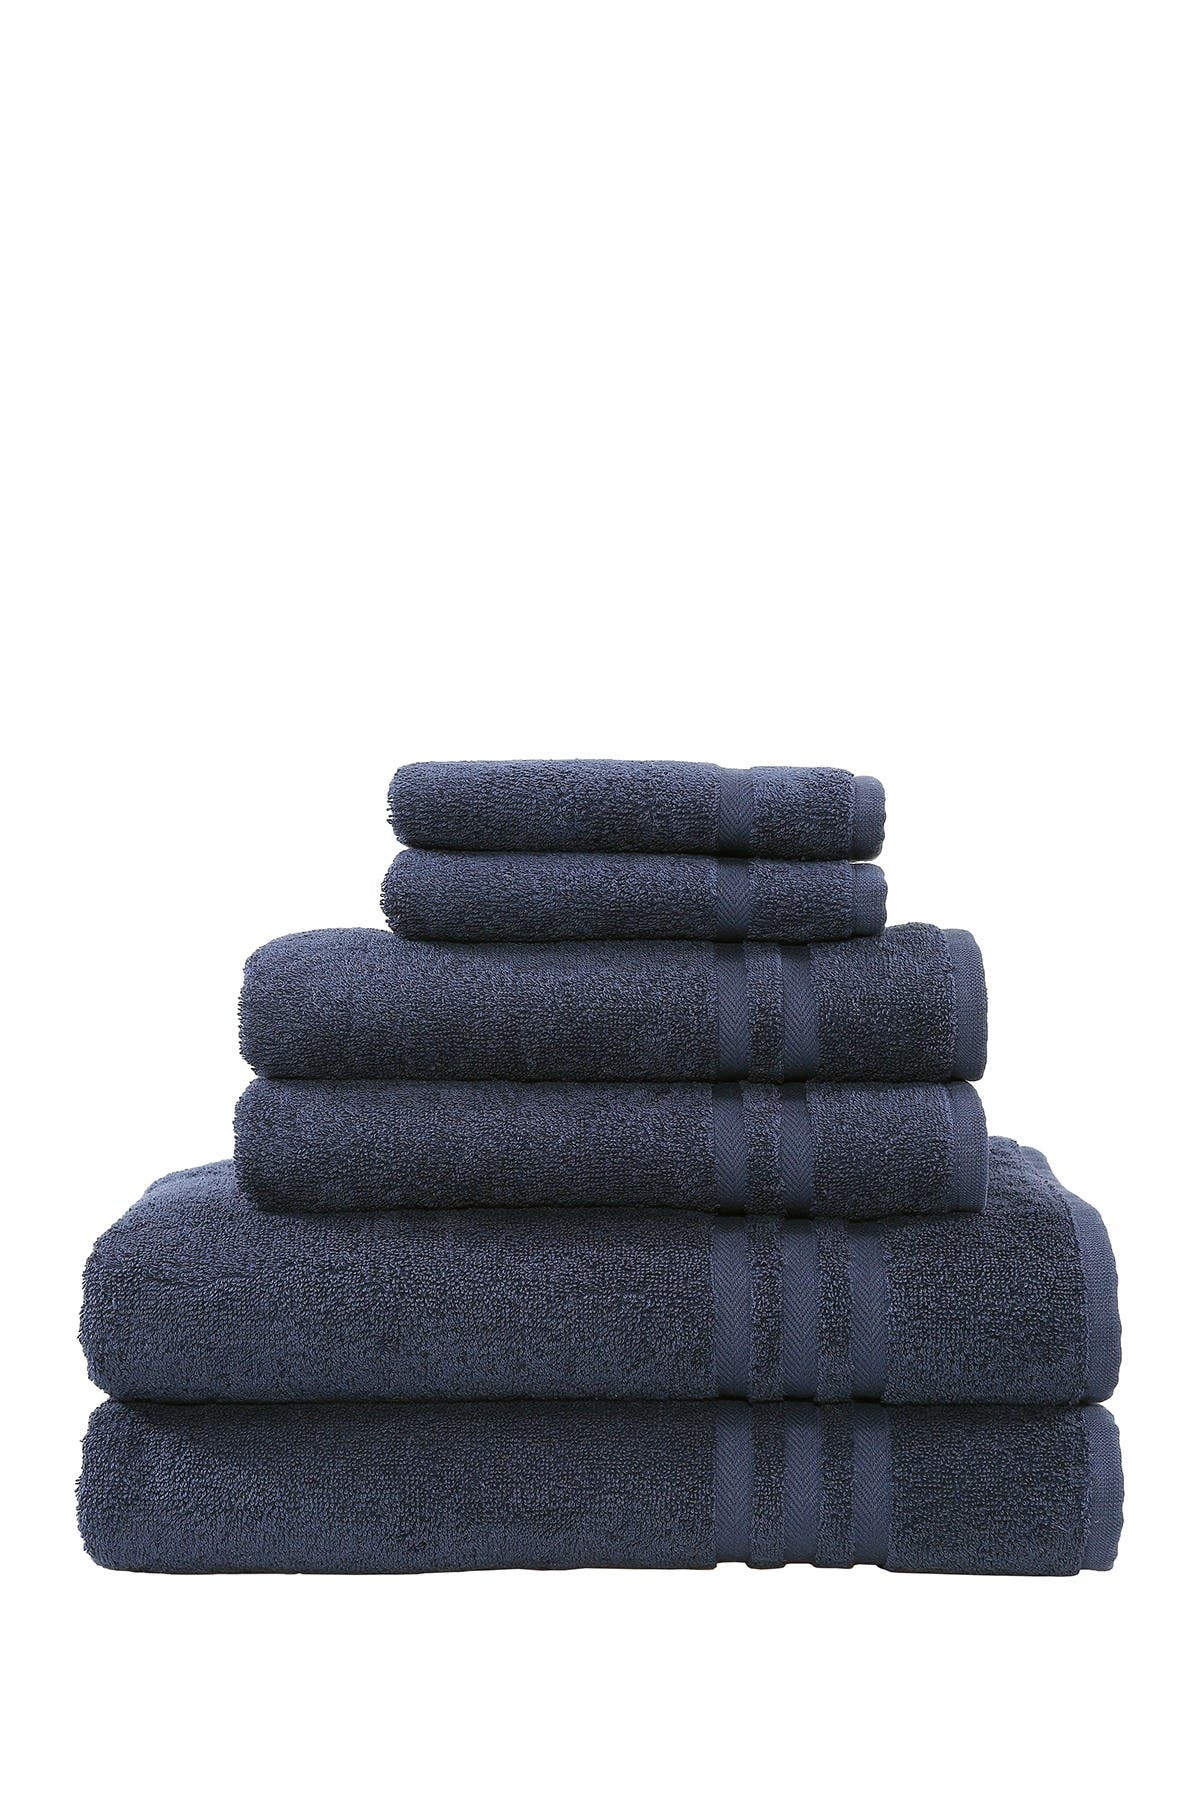 Image of LINUM HOME Denzi 6-Piece Towel Set - Twilight Blue